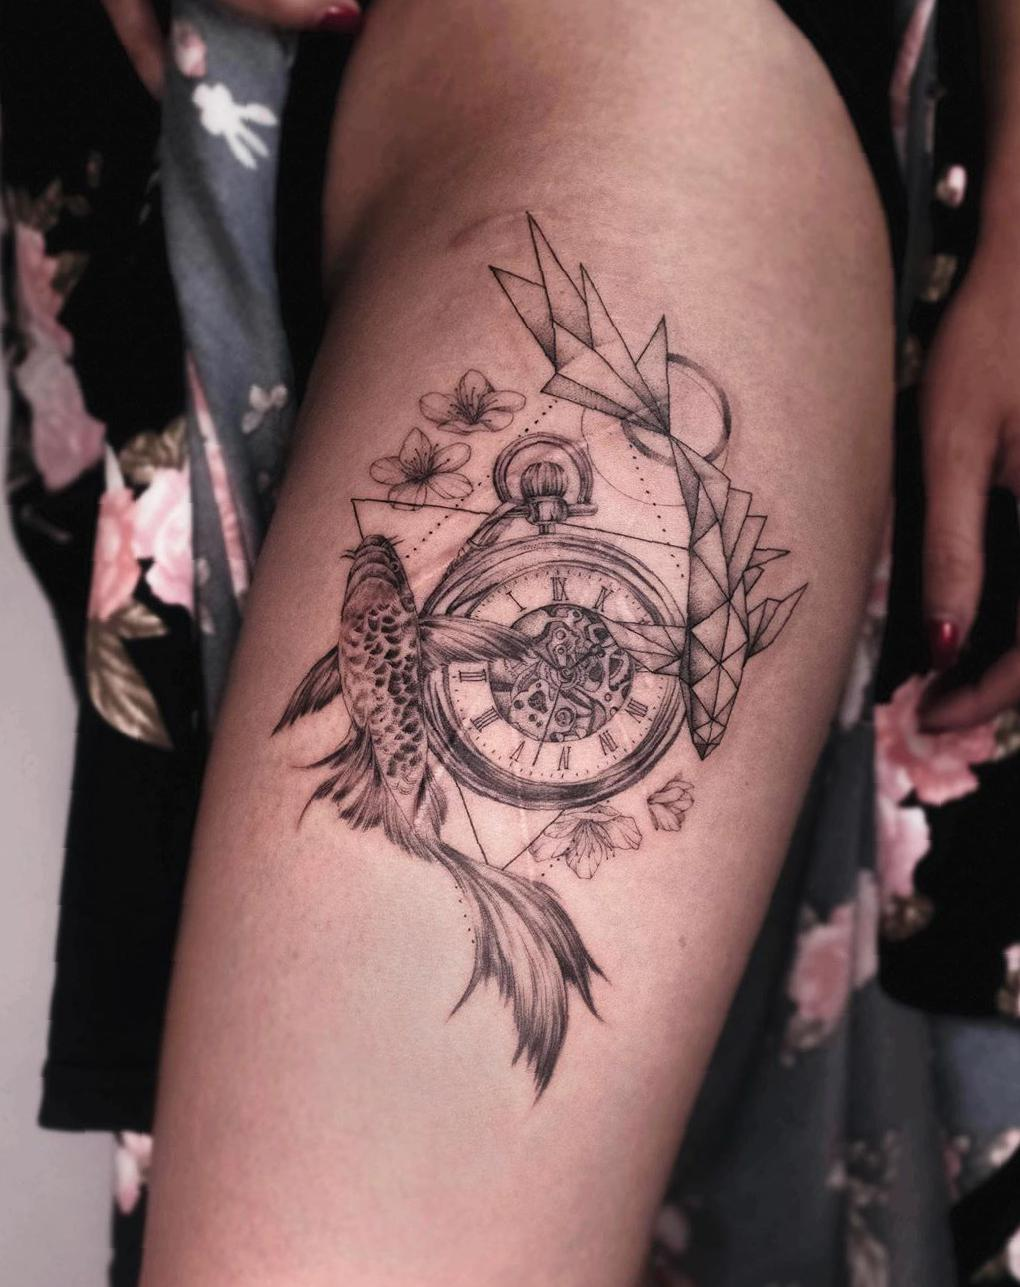 38 Mind-Blowing Thigh Tattoos Designs For Women 2020 thigh tattoos,tattoo for women ,female tattoo,minimalist tattoo,animal tattoo,sexy tattoo,colored tattoo,cute tattoo,words tattoo